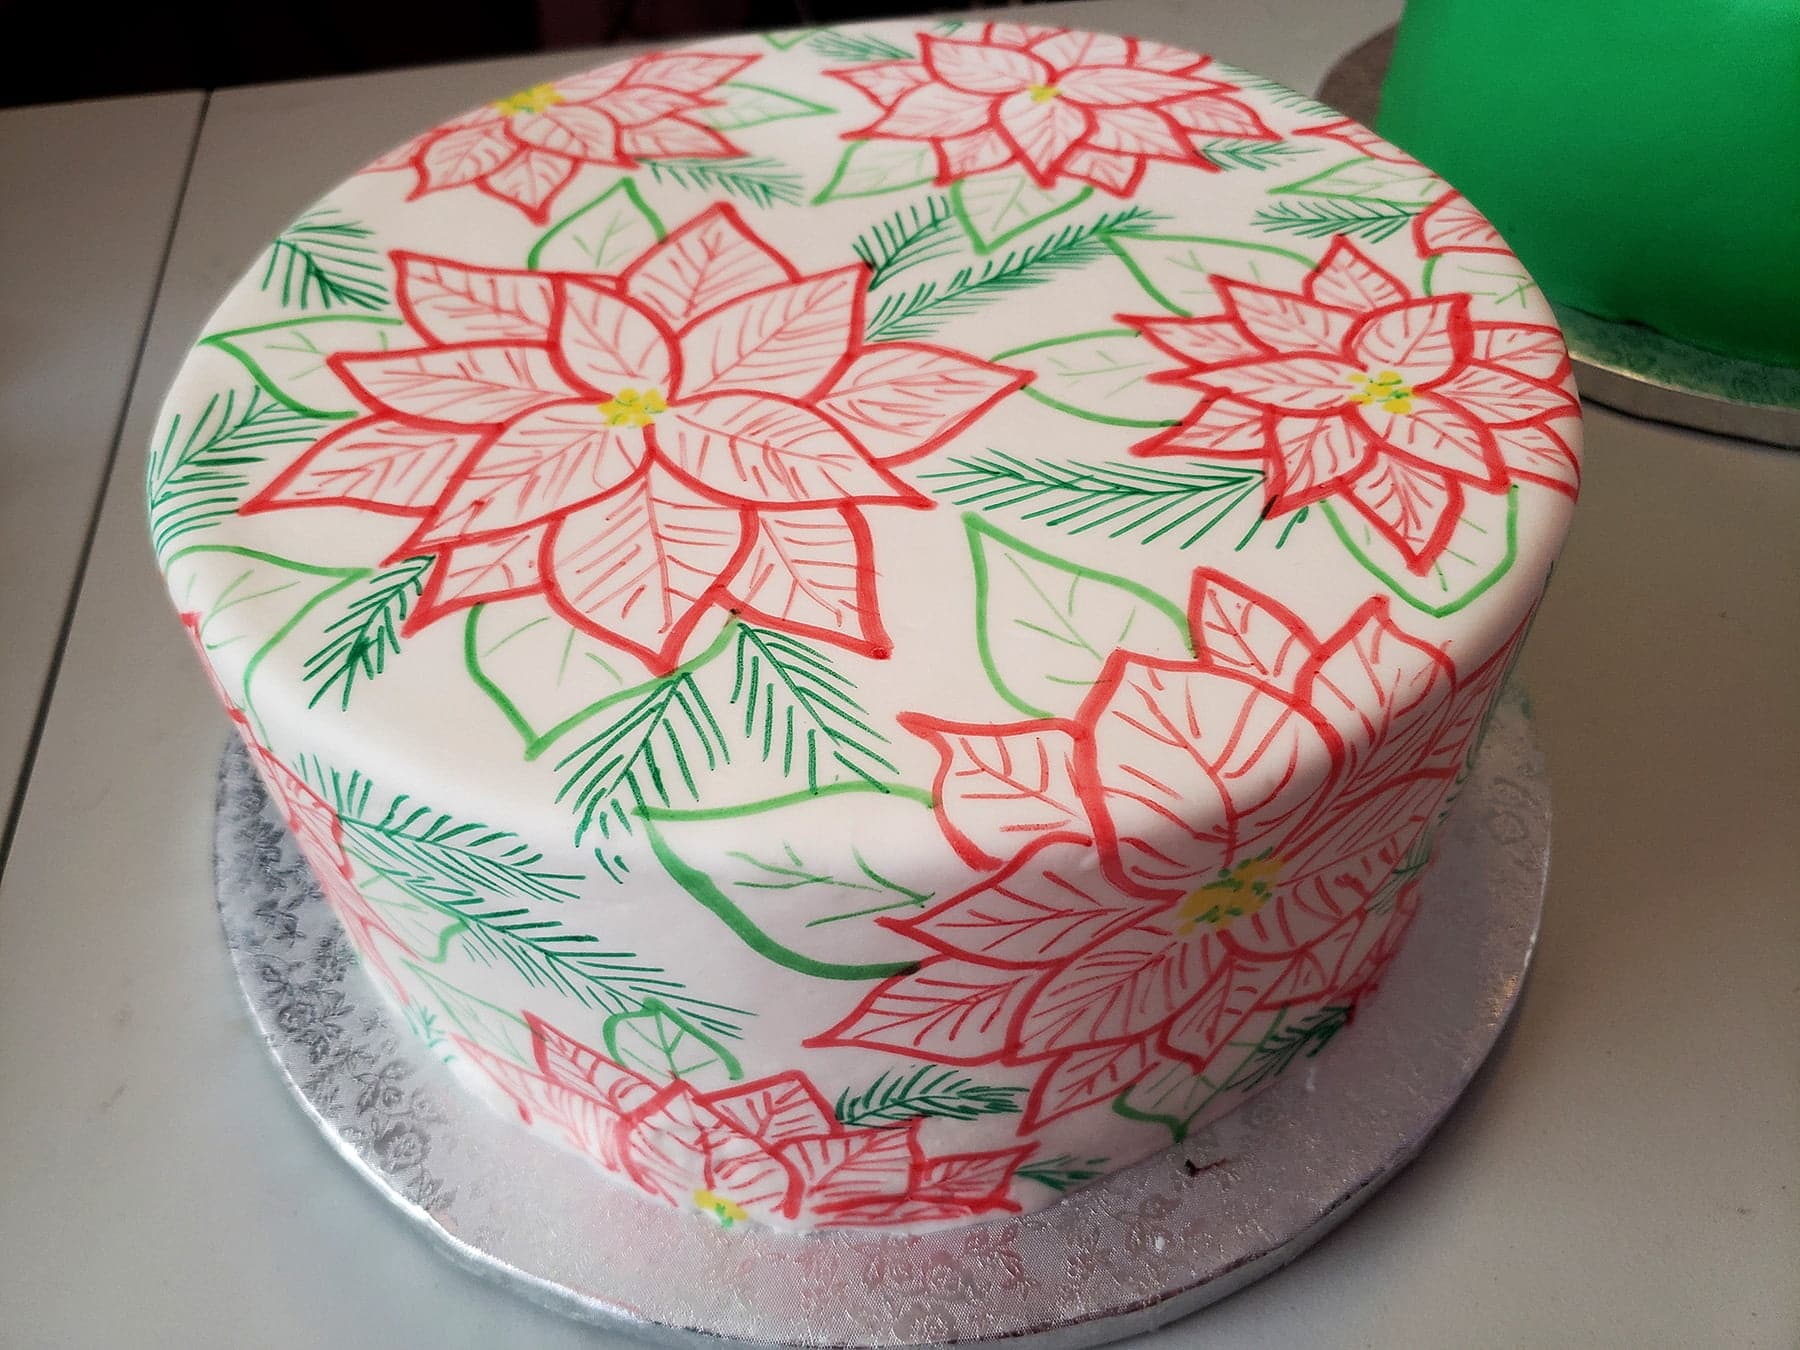 A large, round cake covered in smooth white fondant is covered in hand sketched poinsettias. The design is in red, 2 shades of green, and has yellow accents.